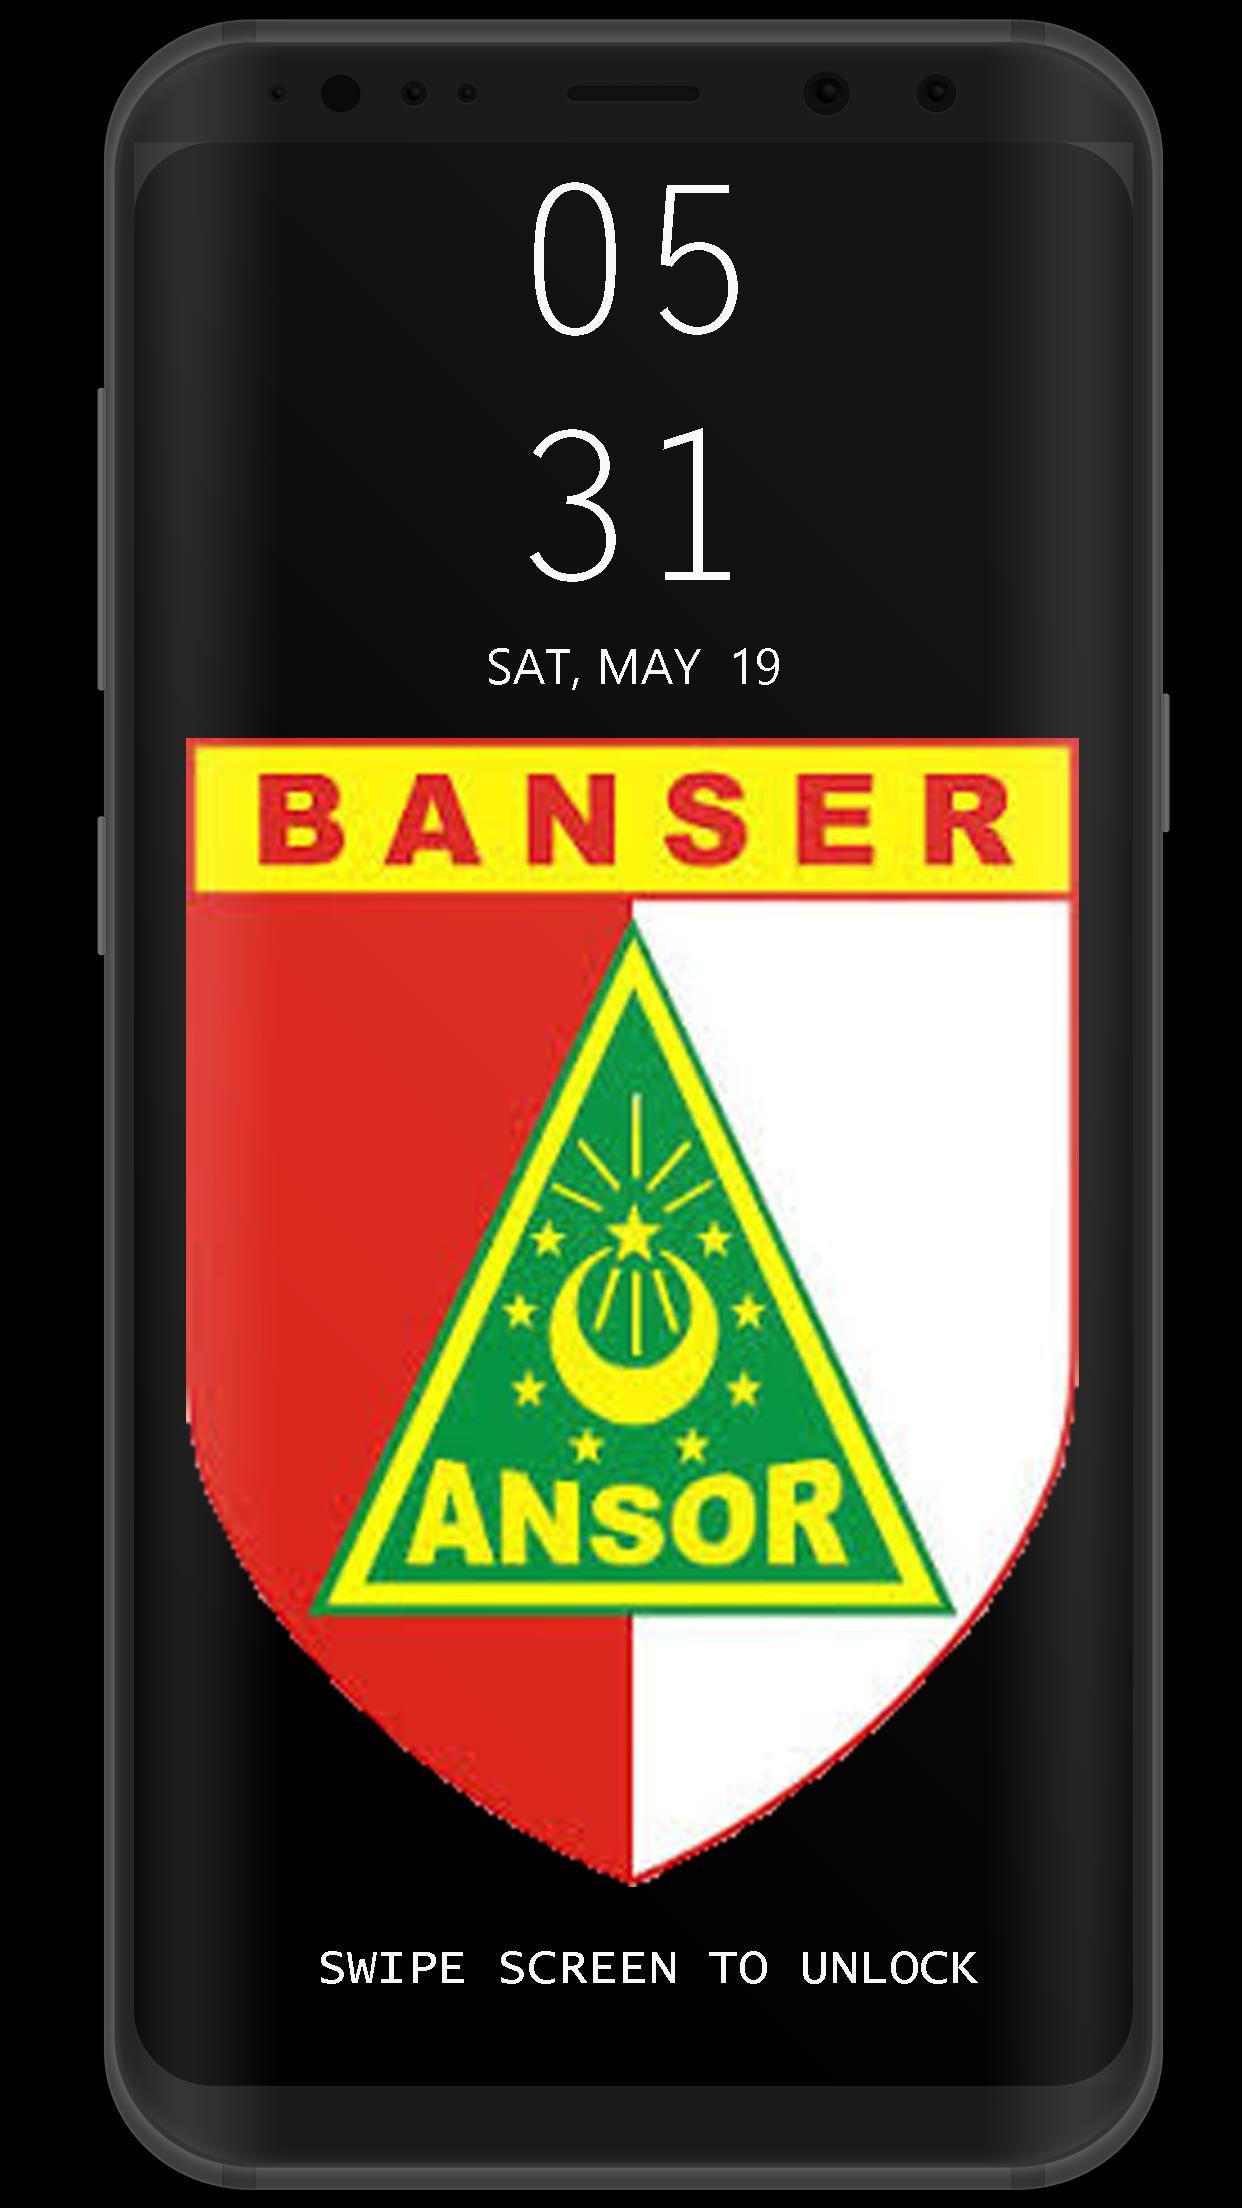 Banser Wallpaper For Android APK Download